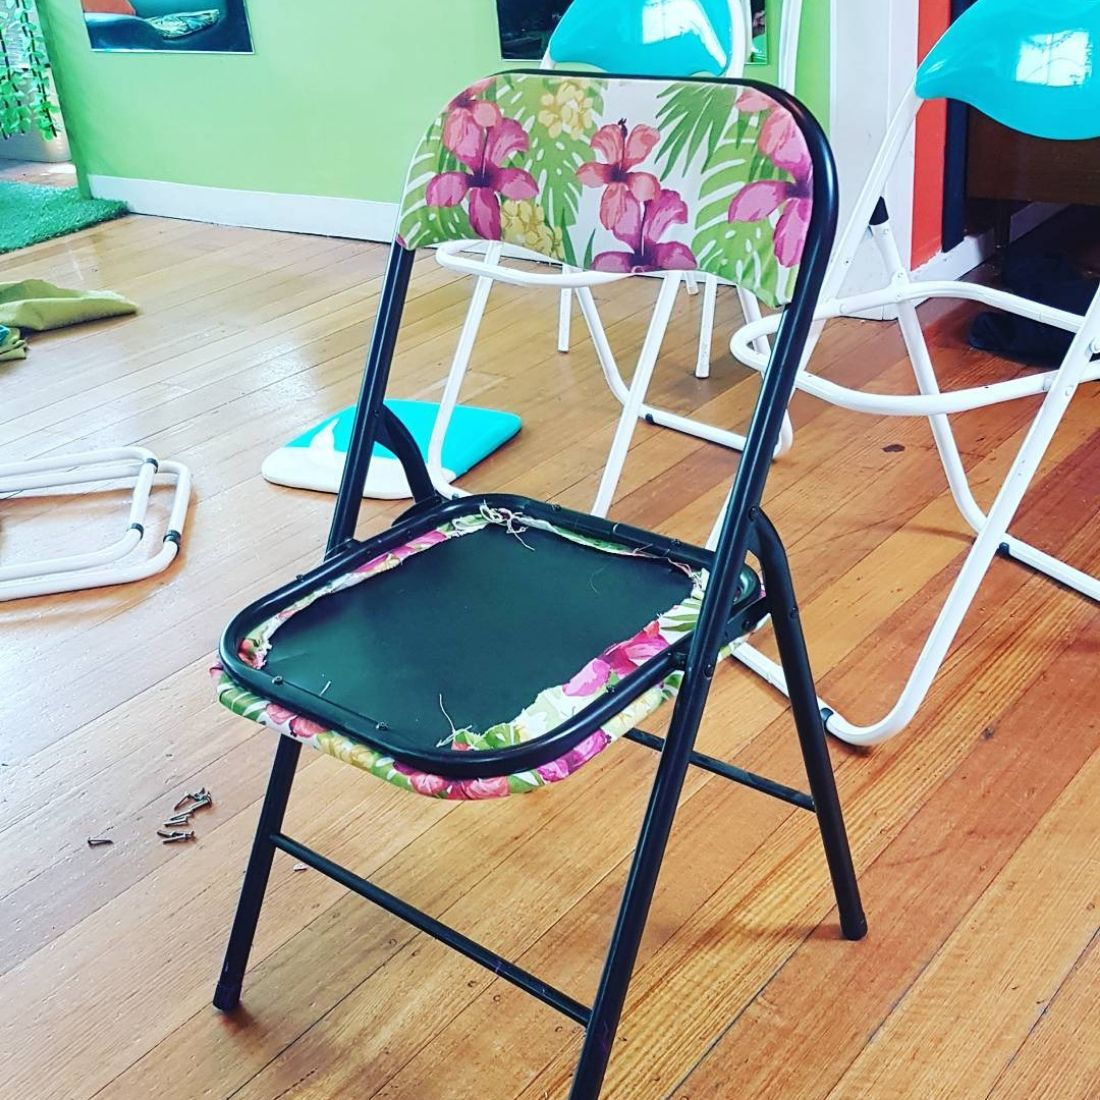 attempting to re-upholster chairs